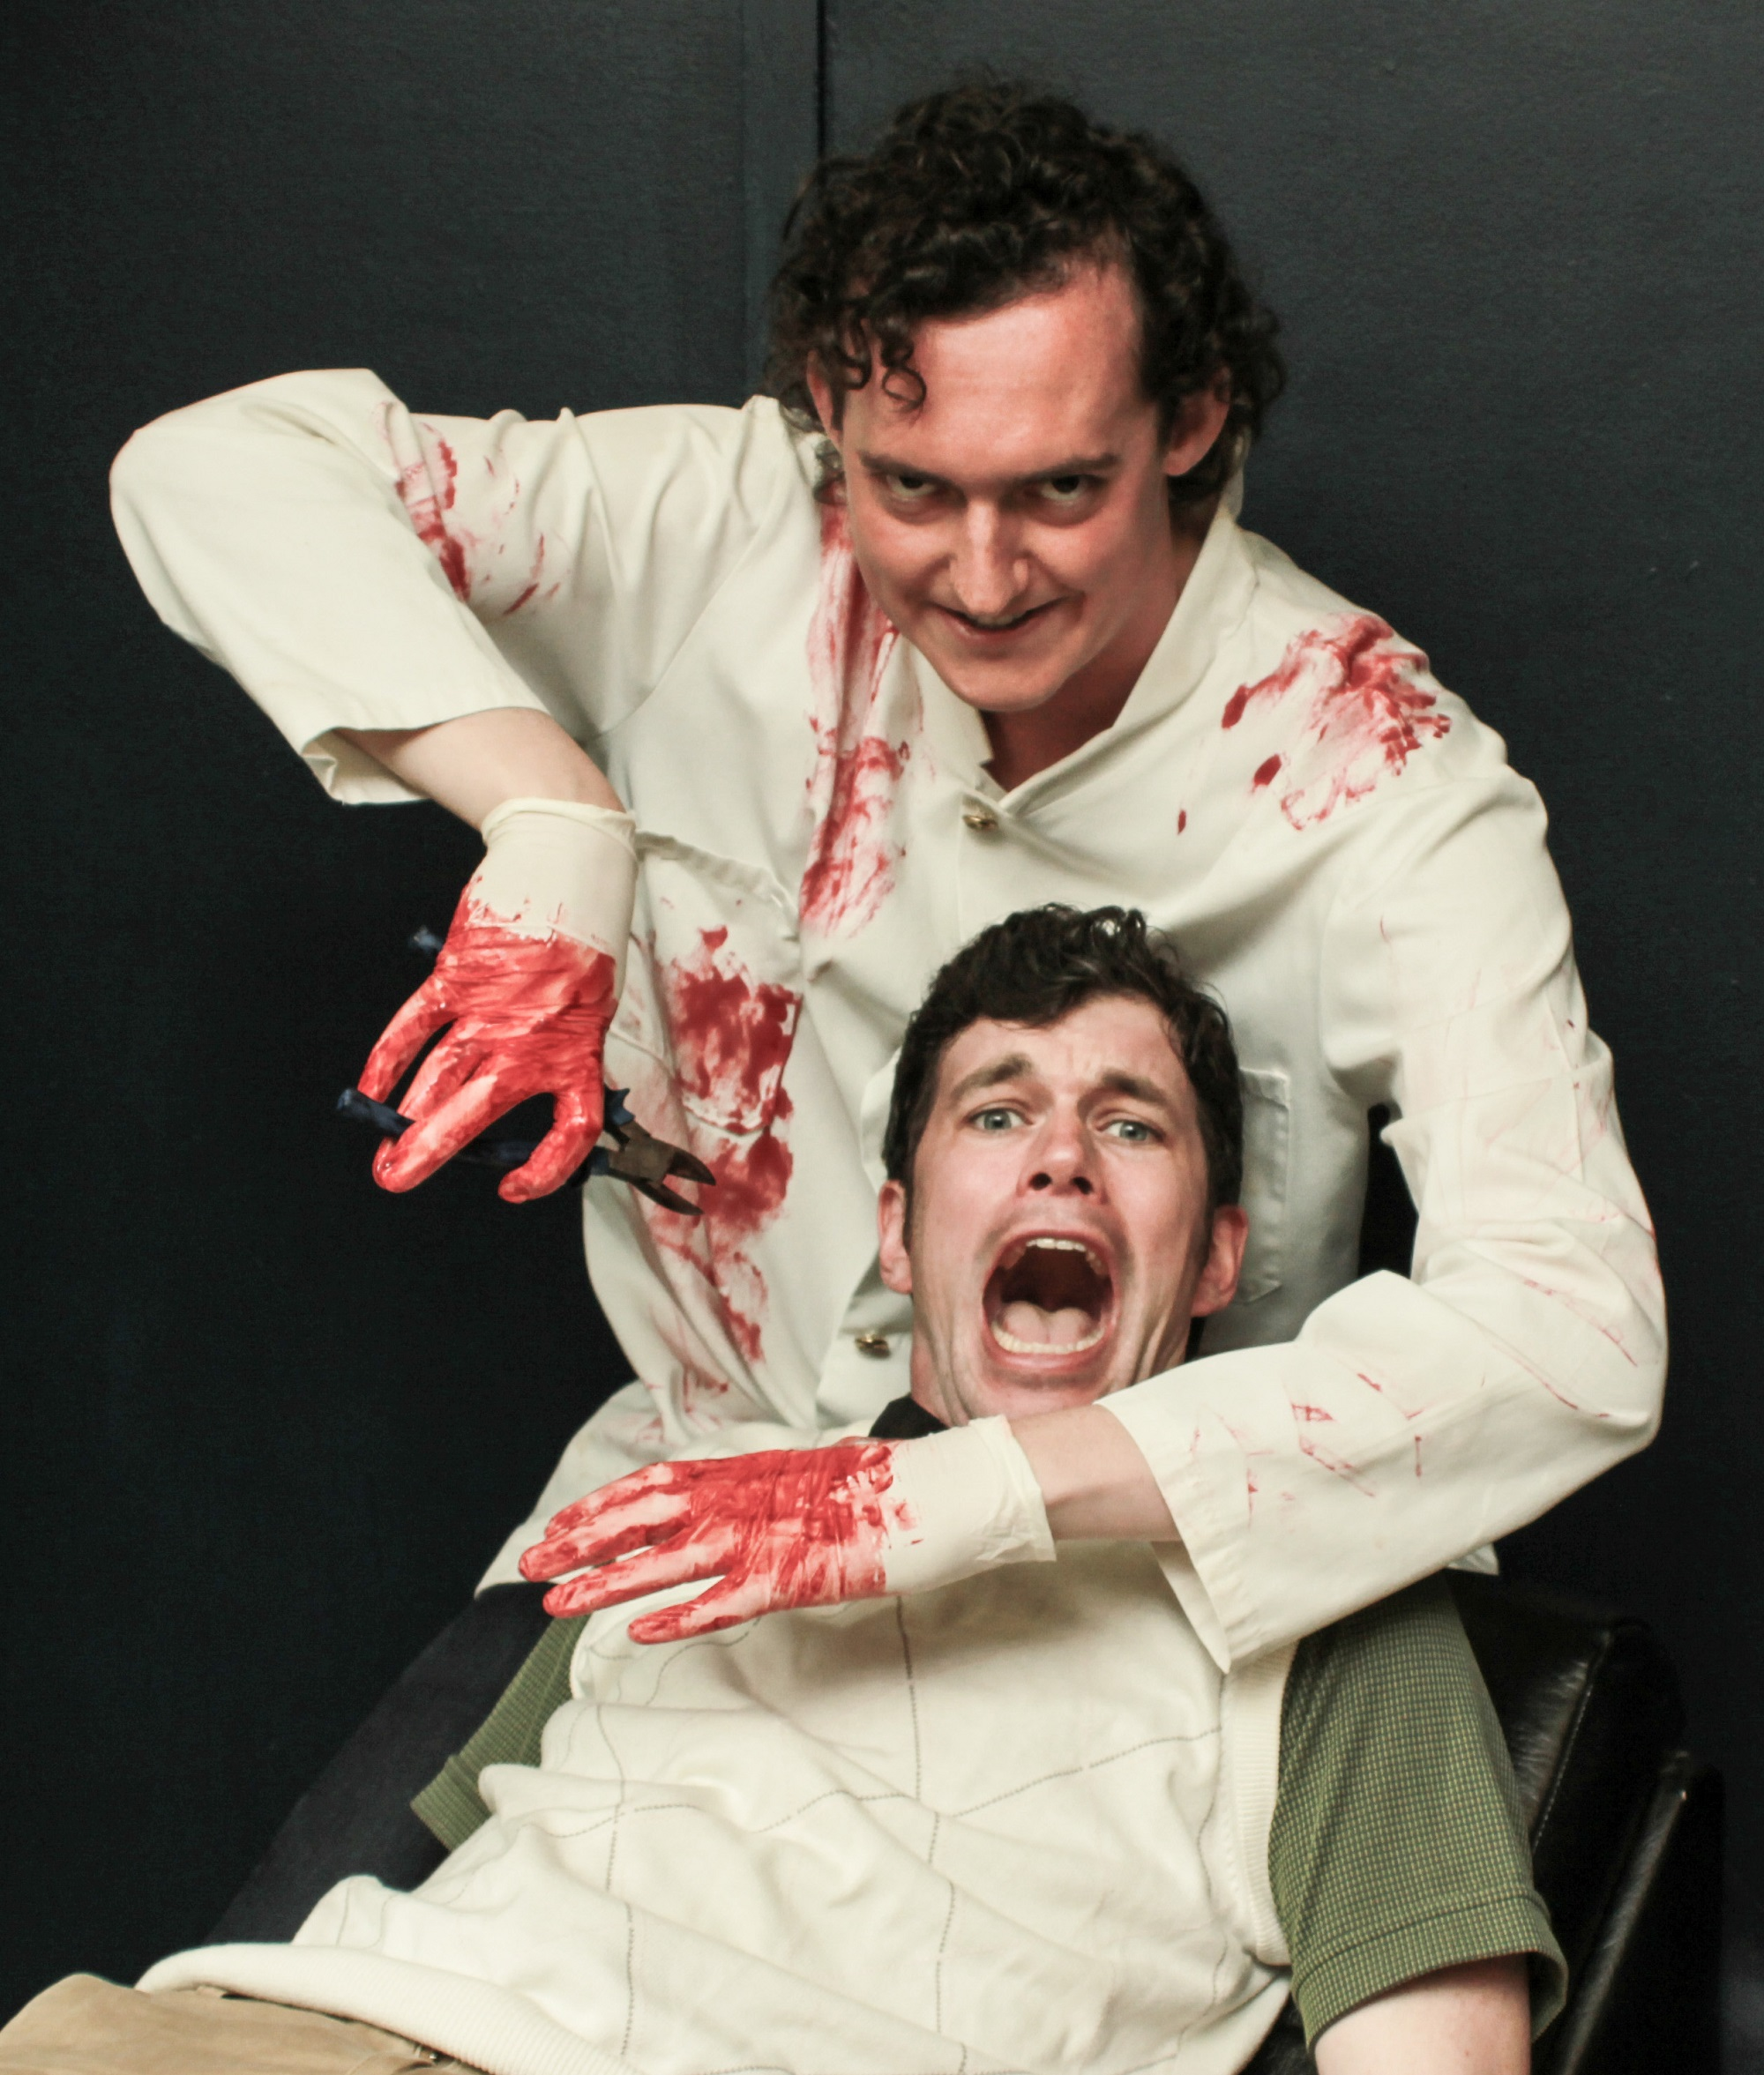 Seymour (Owen Measday, front) finds himself at the mercy of sadistic dentist Orin Scrivello (Luke Daly) in  Little Shop of Horrors .